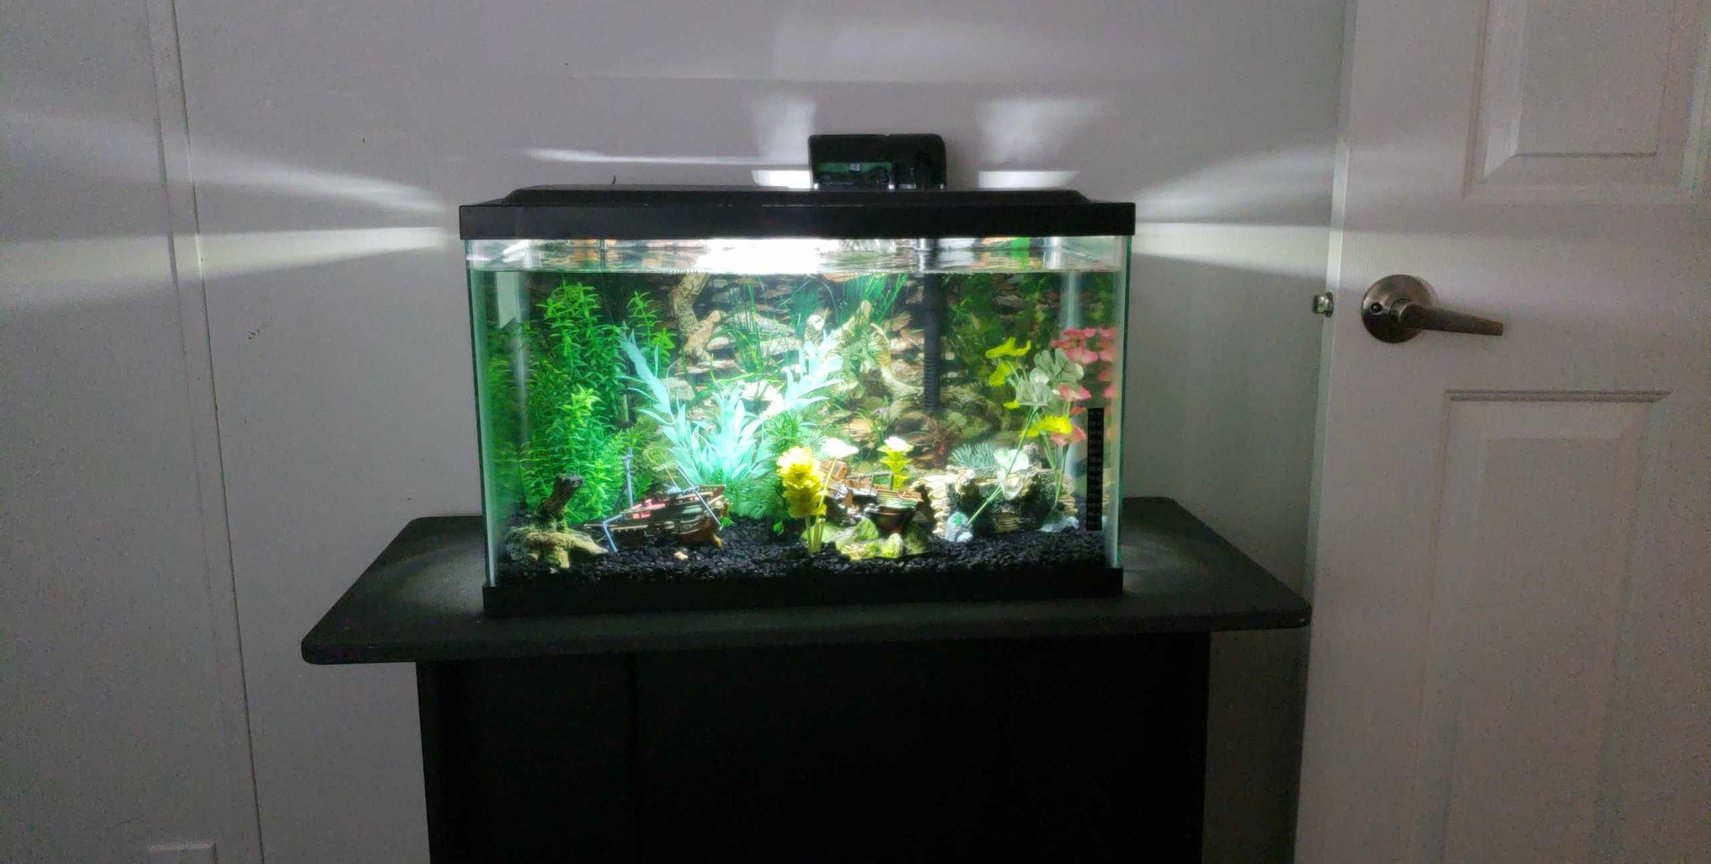 fish tank picture - My 10 gallon with a whisper 5-15 gallon hob filter, tetra heater, artificial plants and ornamental shipwrecks.